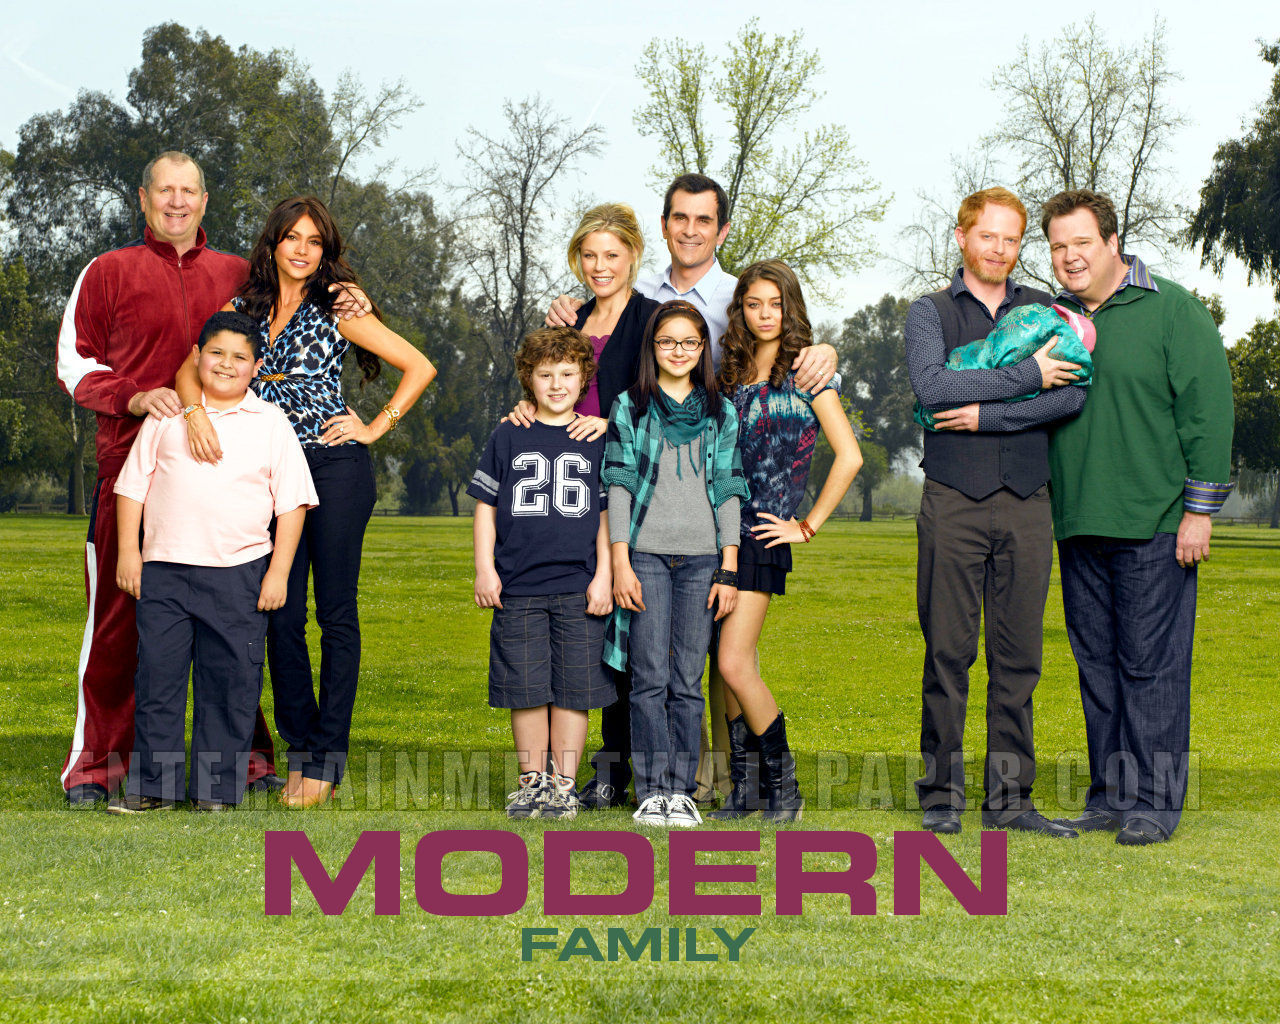 Modern-Family-Wallpaper-modern-family-8938506-1280-1024.jpg